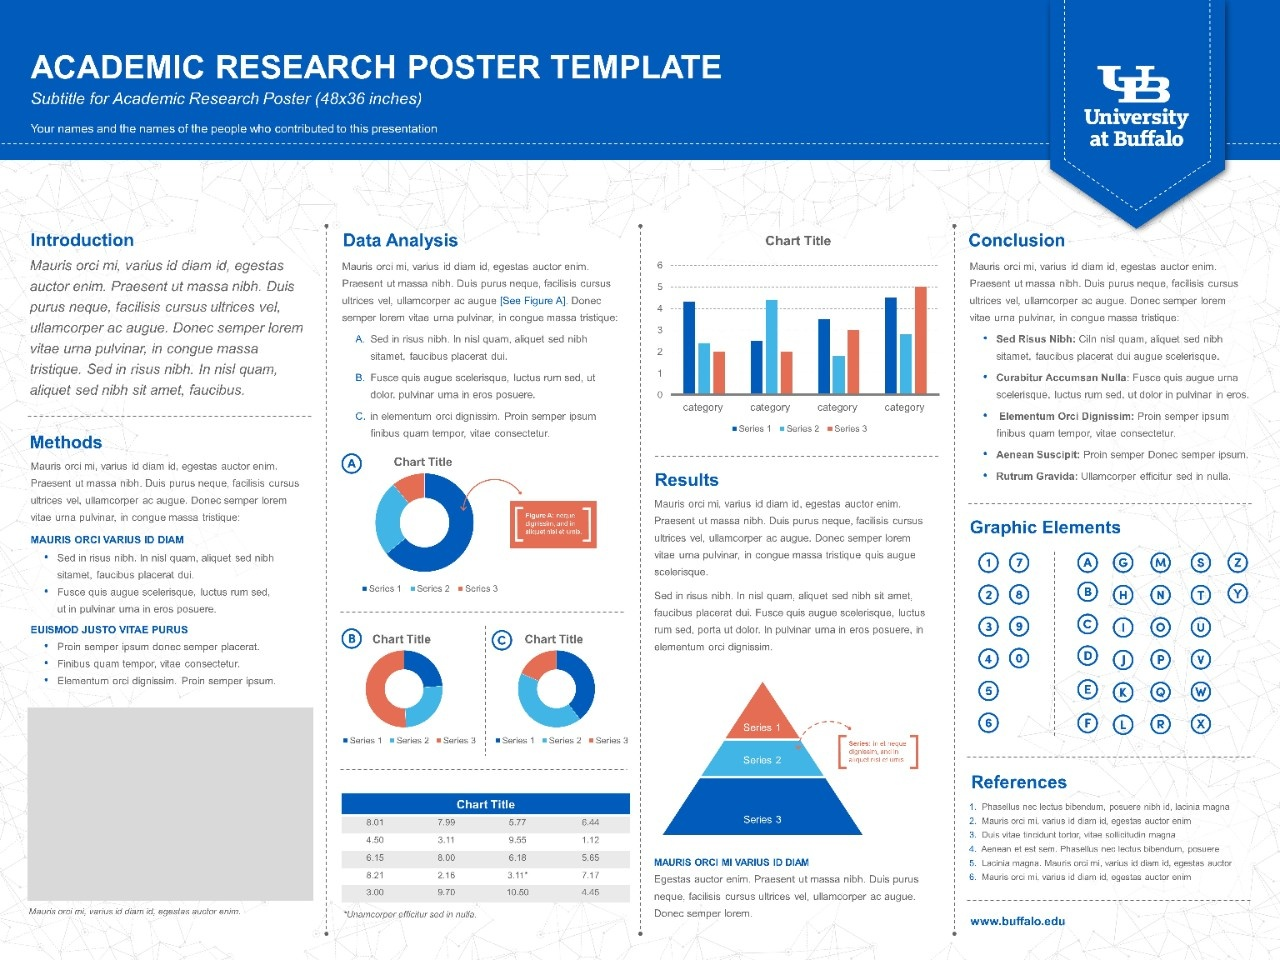 Presentation templates university at buffalo school of for Powerpoint poster templates 48x36